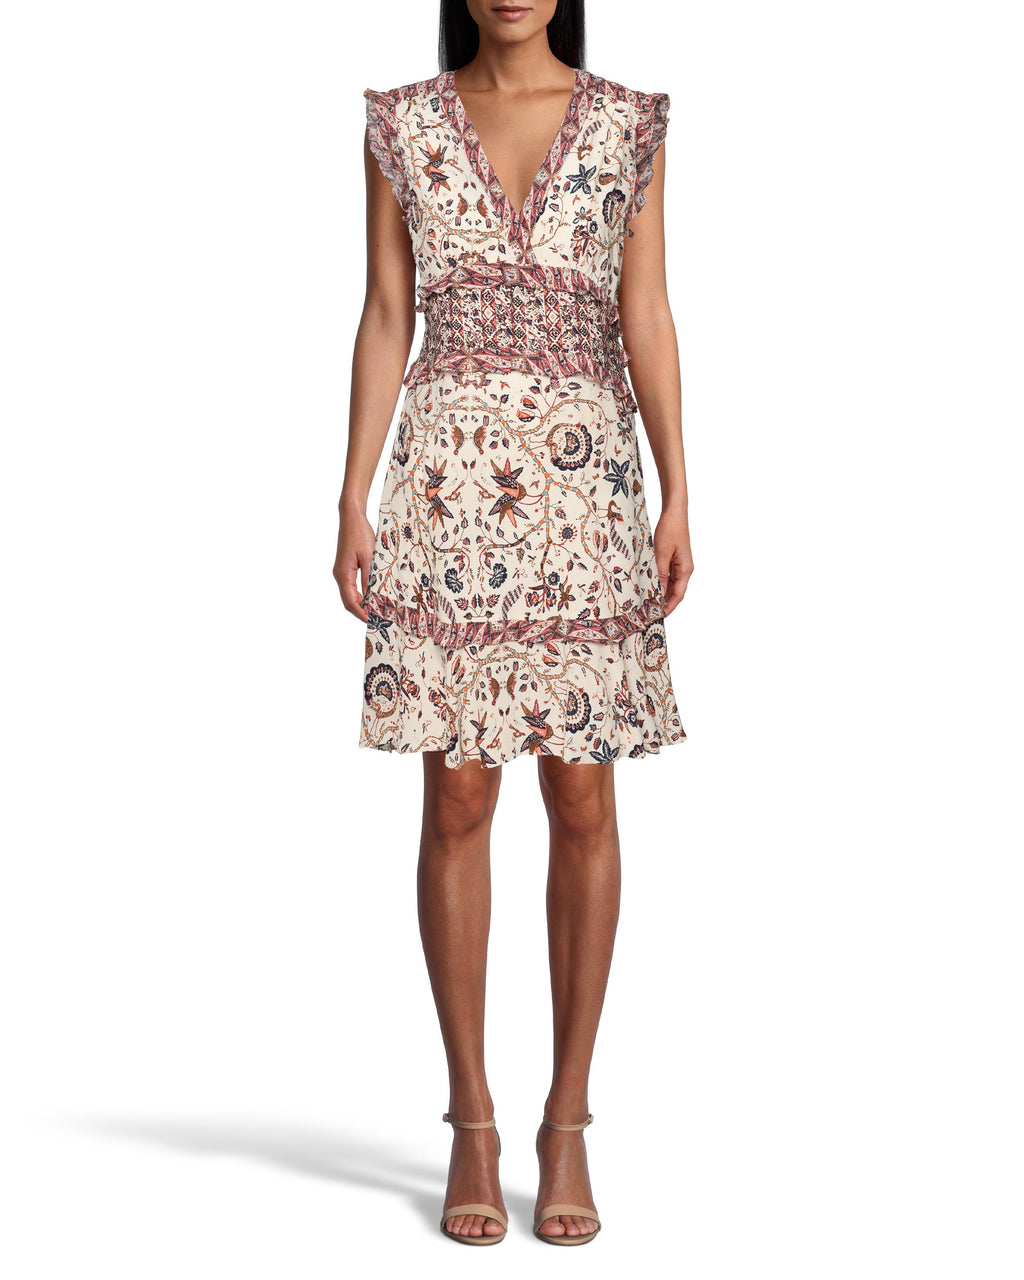 CD18489 - JAKARTA PRINT RUFFLE MINI DRESS - dresses - short - This sleeveless mini dress is designed in our earth toned jakarta print and features ruffle details throughout for movement. Concealed zipper for closure. Add 1 line break Stylist Tip: Style with knee high boots like in our Resort 2020 campaign.